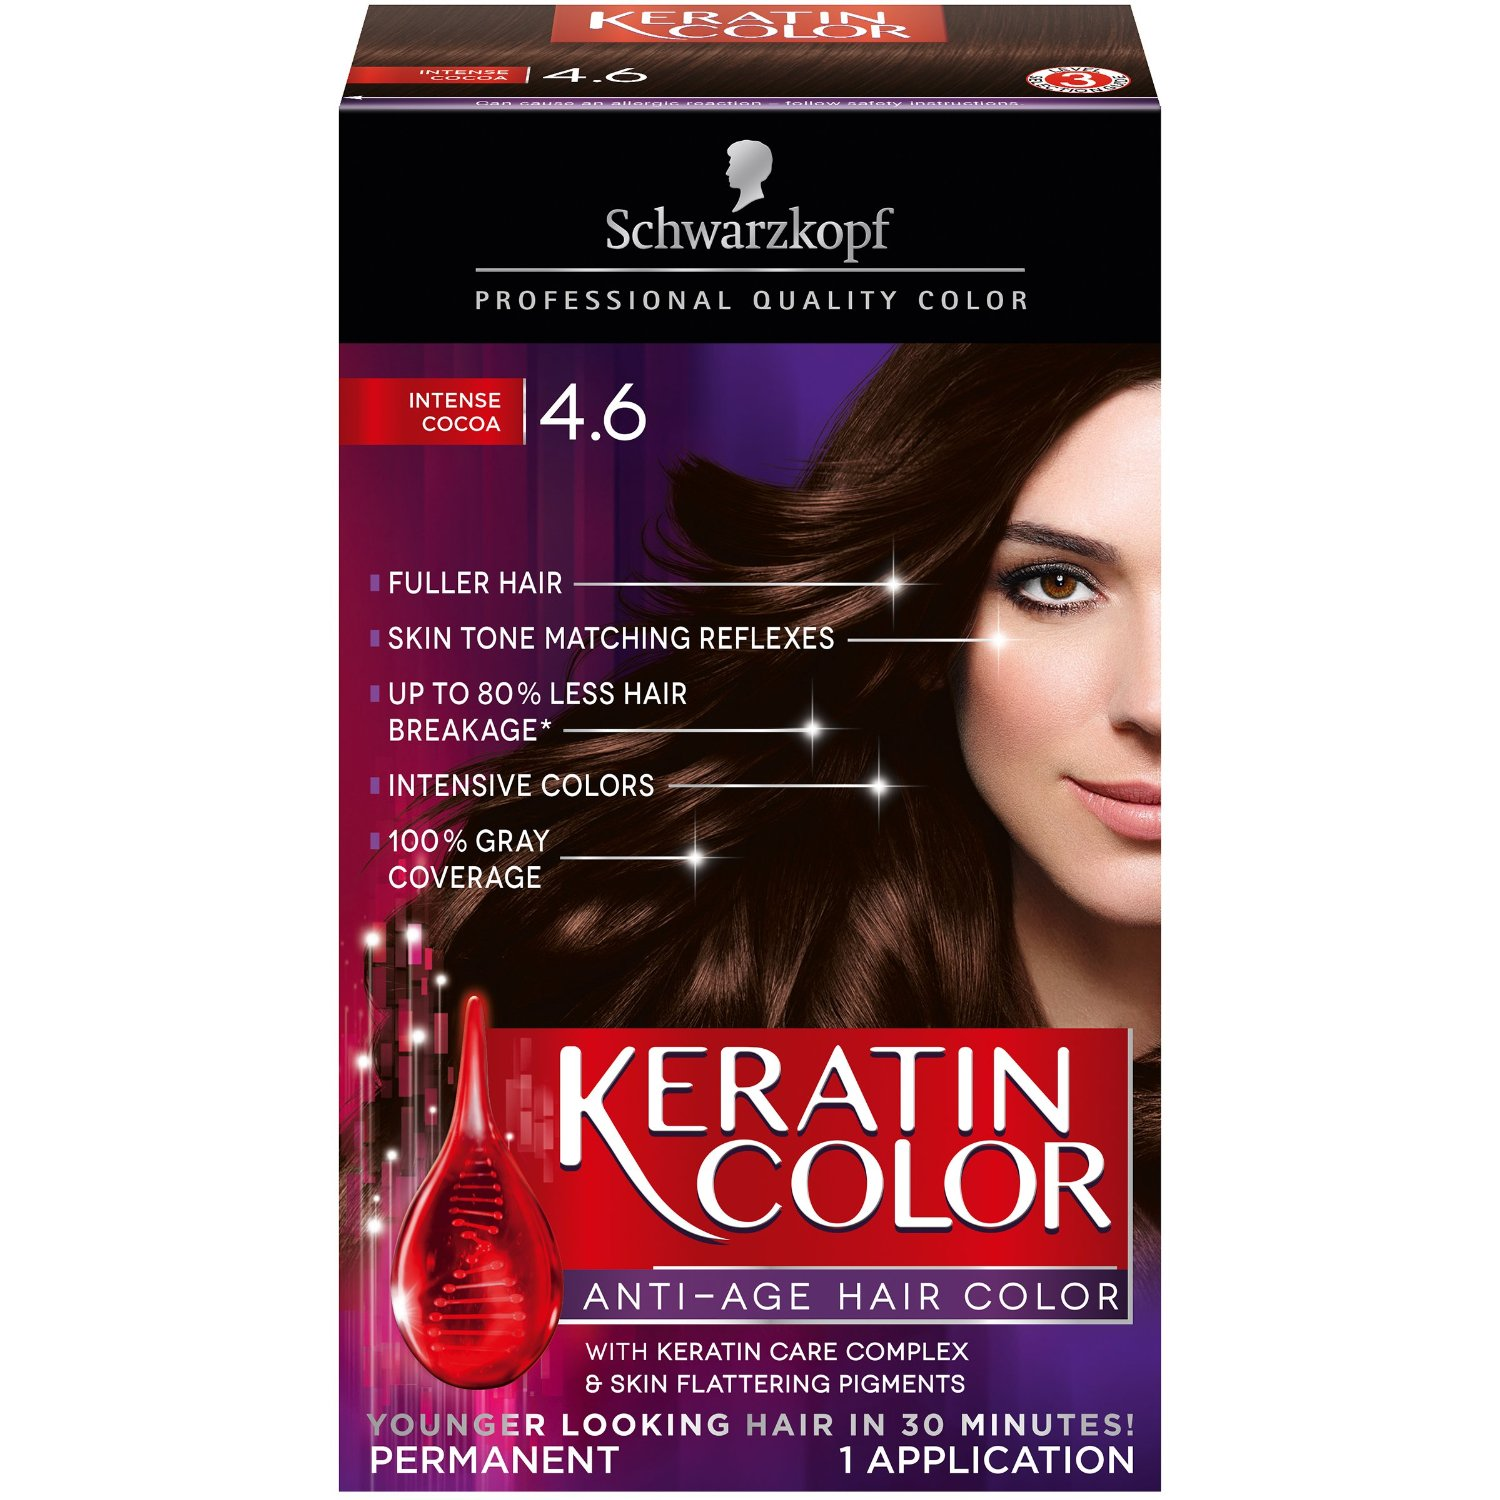 Cheap Hair Color Cocoa Find Hair Color Cocoa Deals On Line At